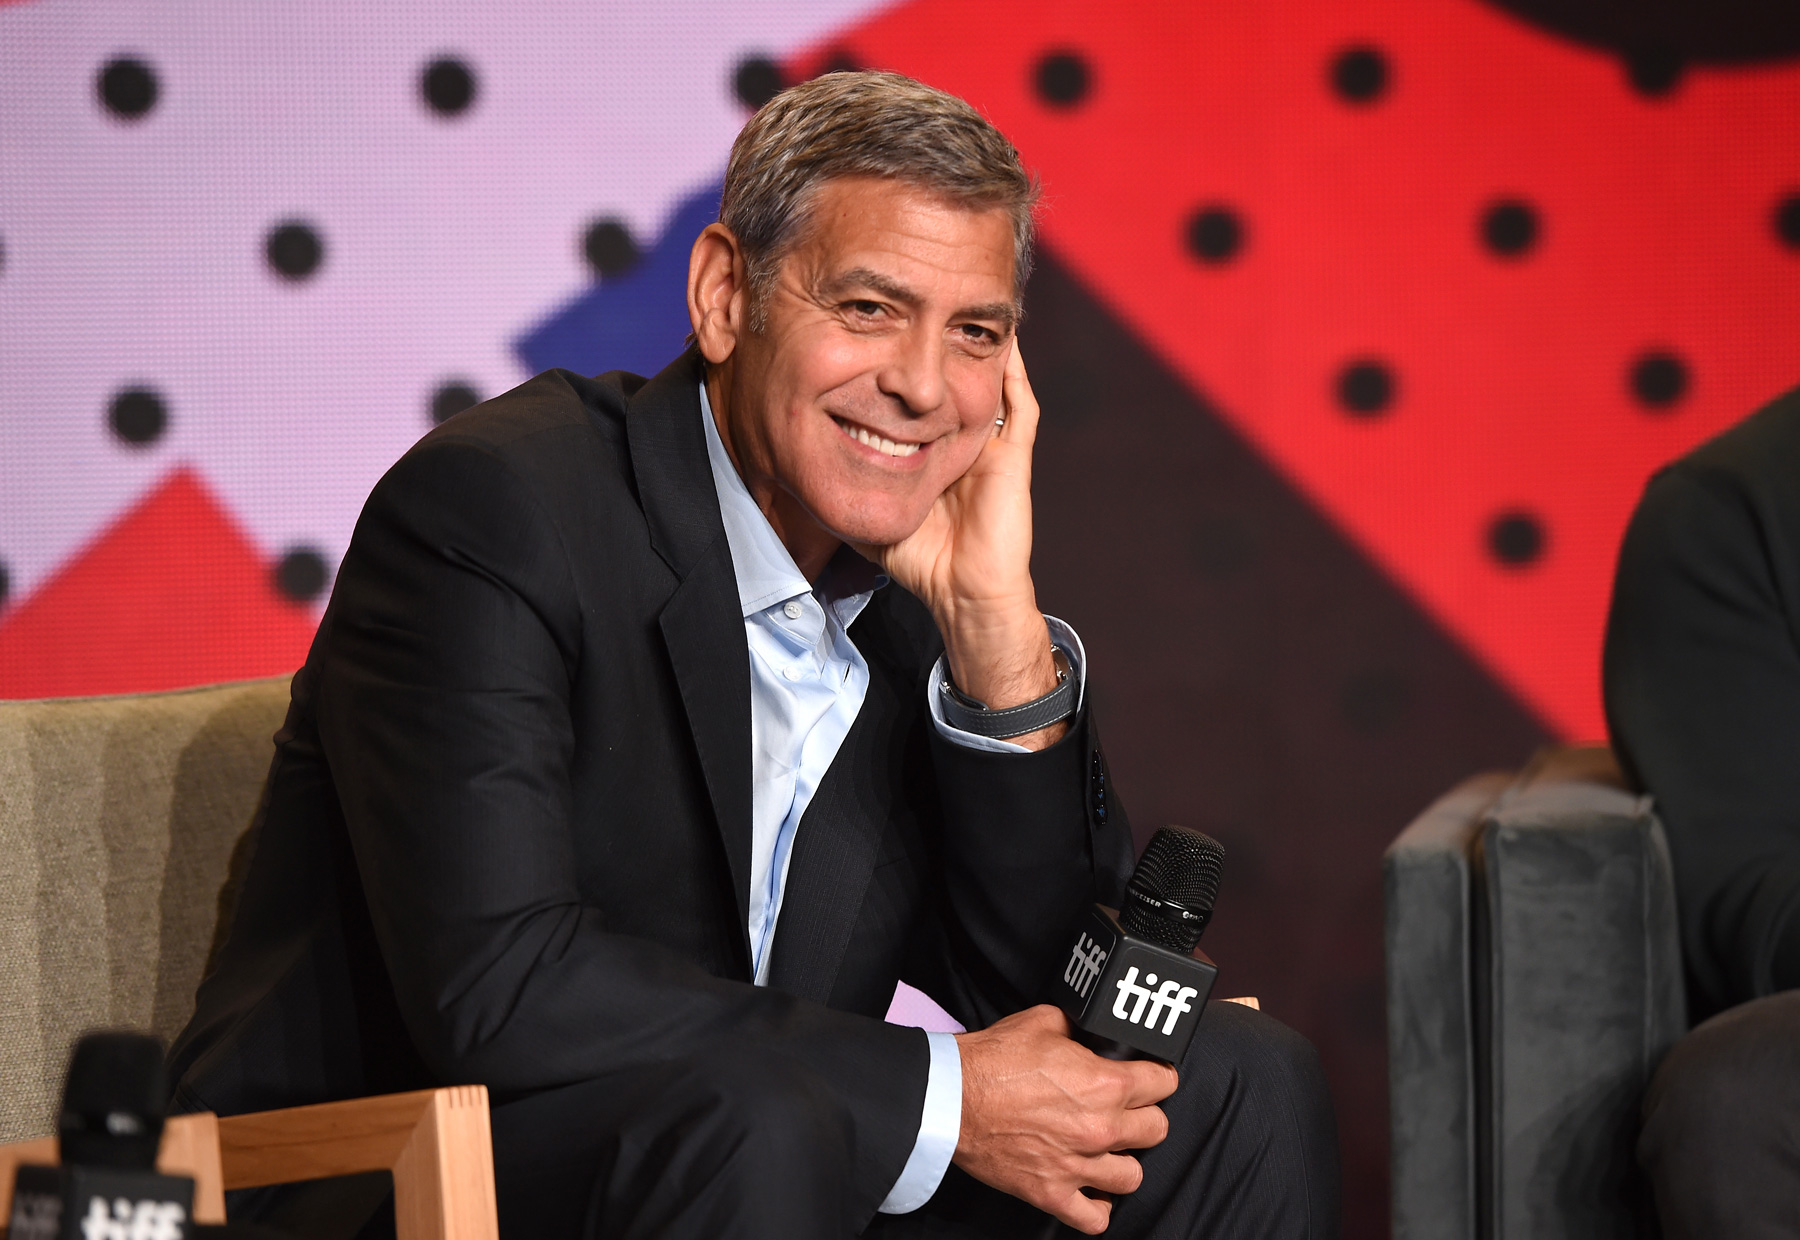 George Clooney looking cute at TIFF 2017